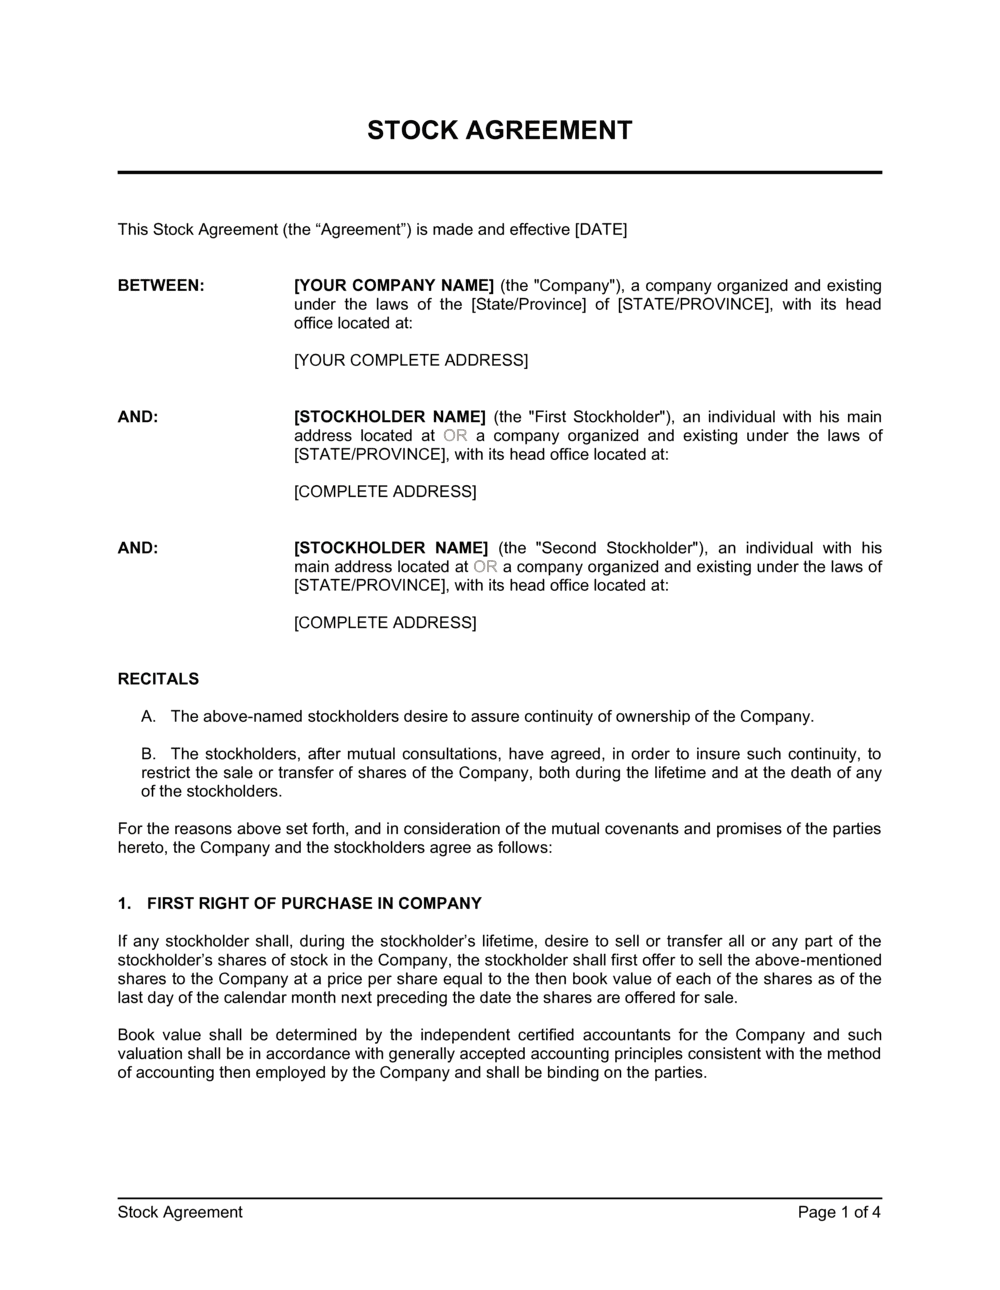 Business-in-a-Box's Stock Agreement Template